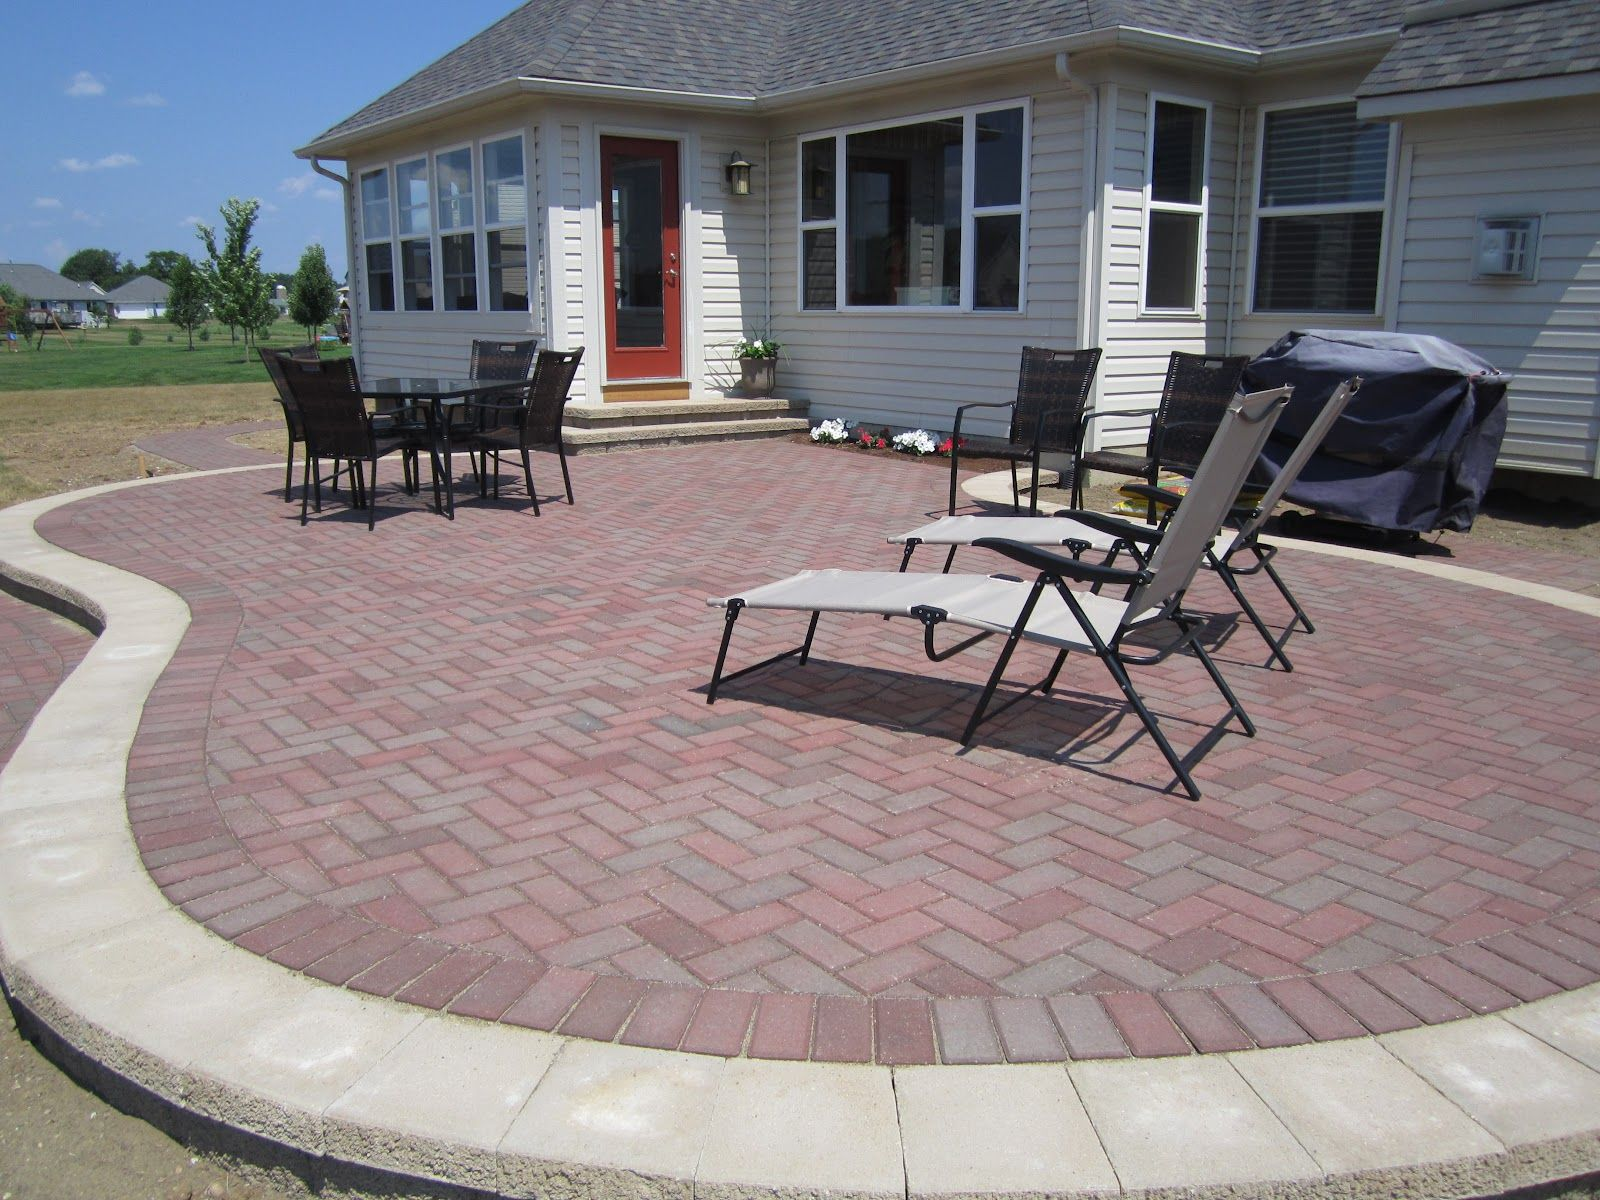 Patio Paver Design Ideas backyard patio design ideas to accompany your tea time ideas 4 homes 1000 Images About Stone Patio Paverfirepit Designs On Pinterest Patio Google Images And Patio Ideas